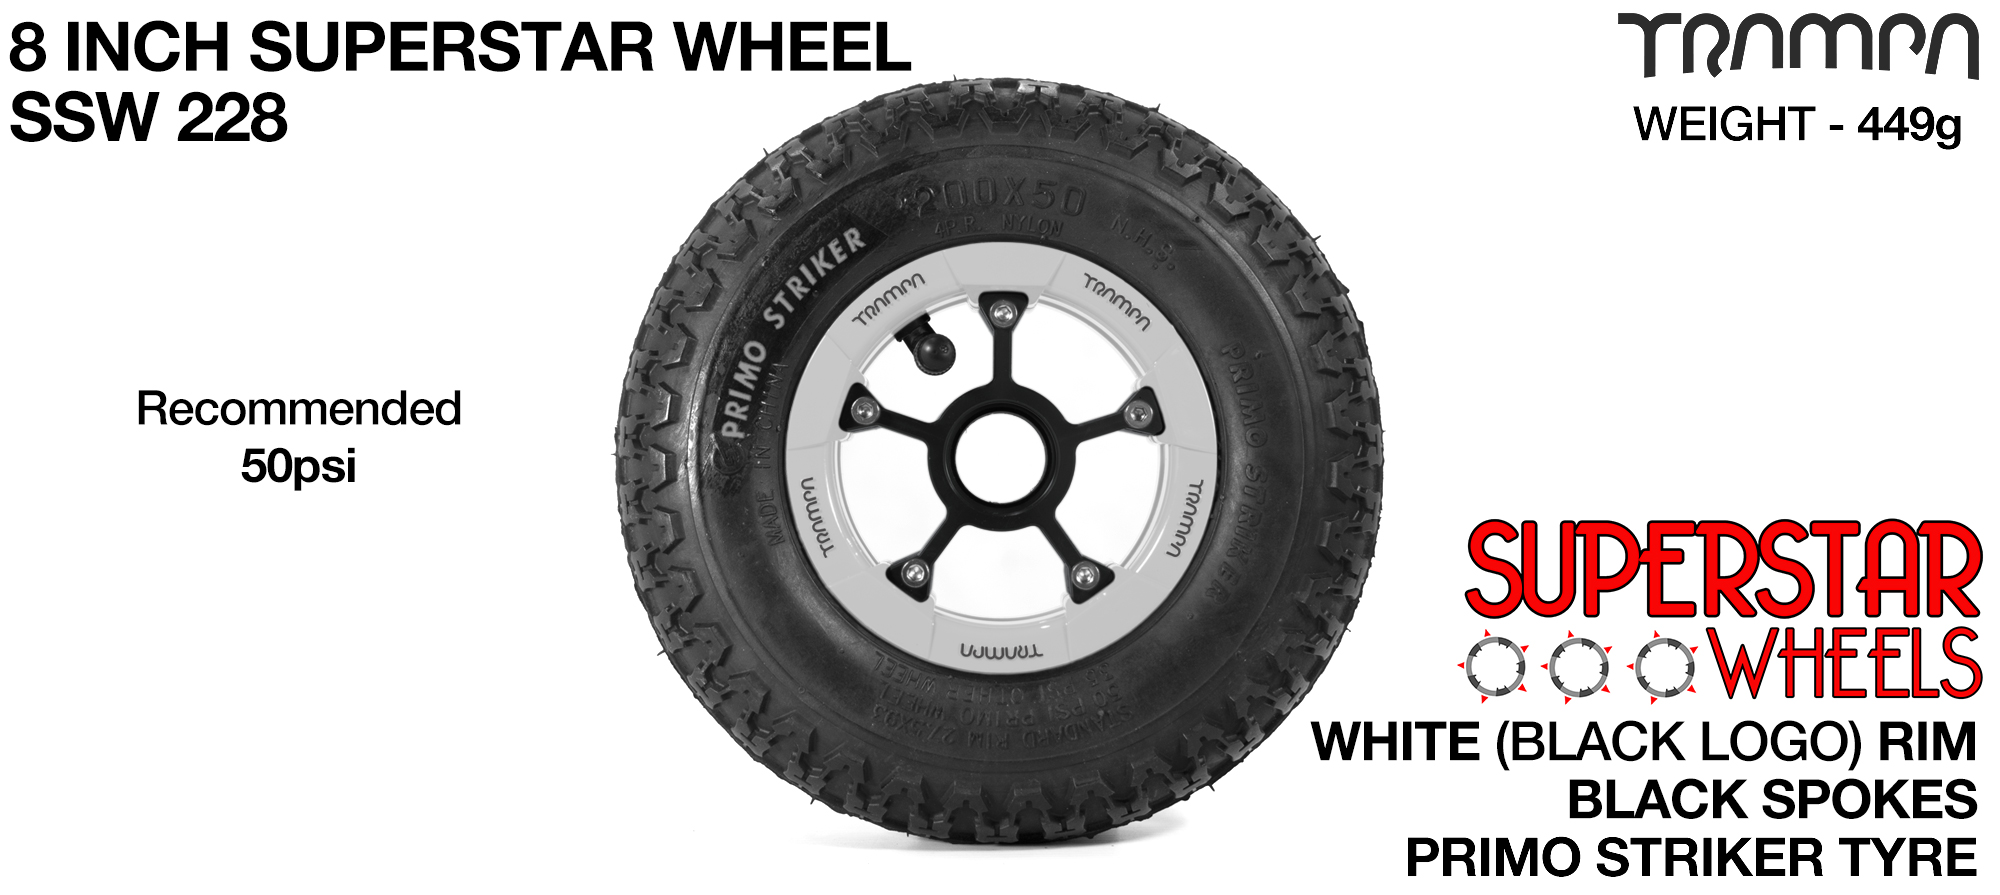 8 Inch Wheel - White Superstar Rim Black Anodised Spokes & Primo Striker 8 Inch Tyre